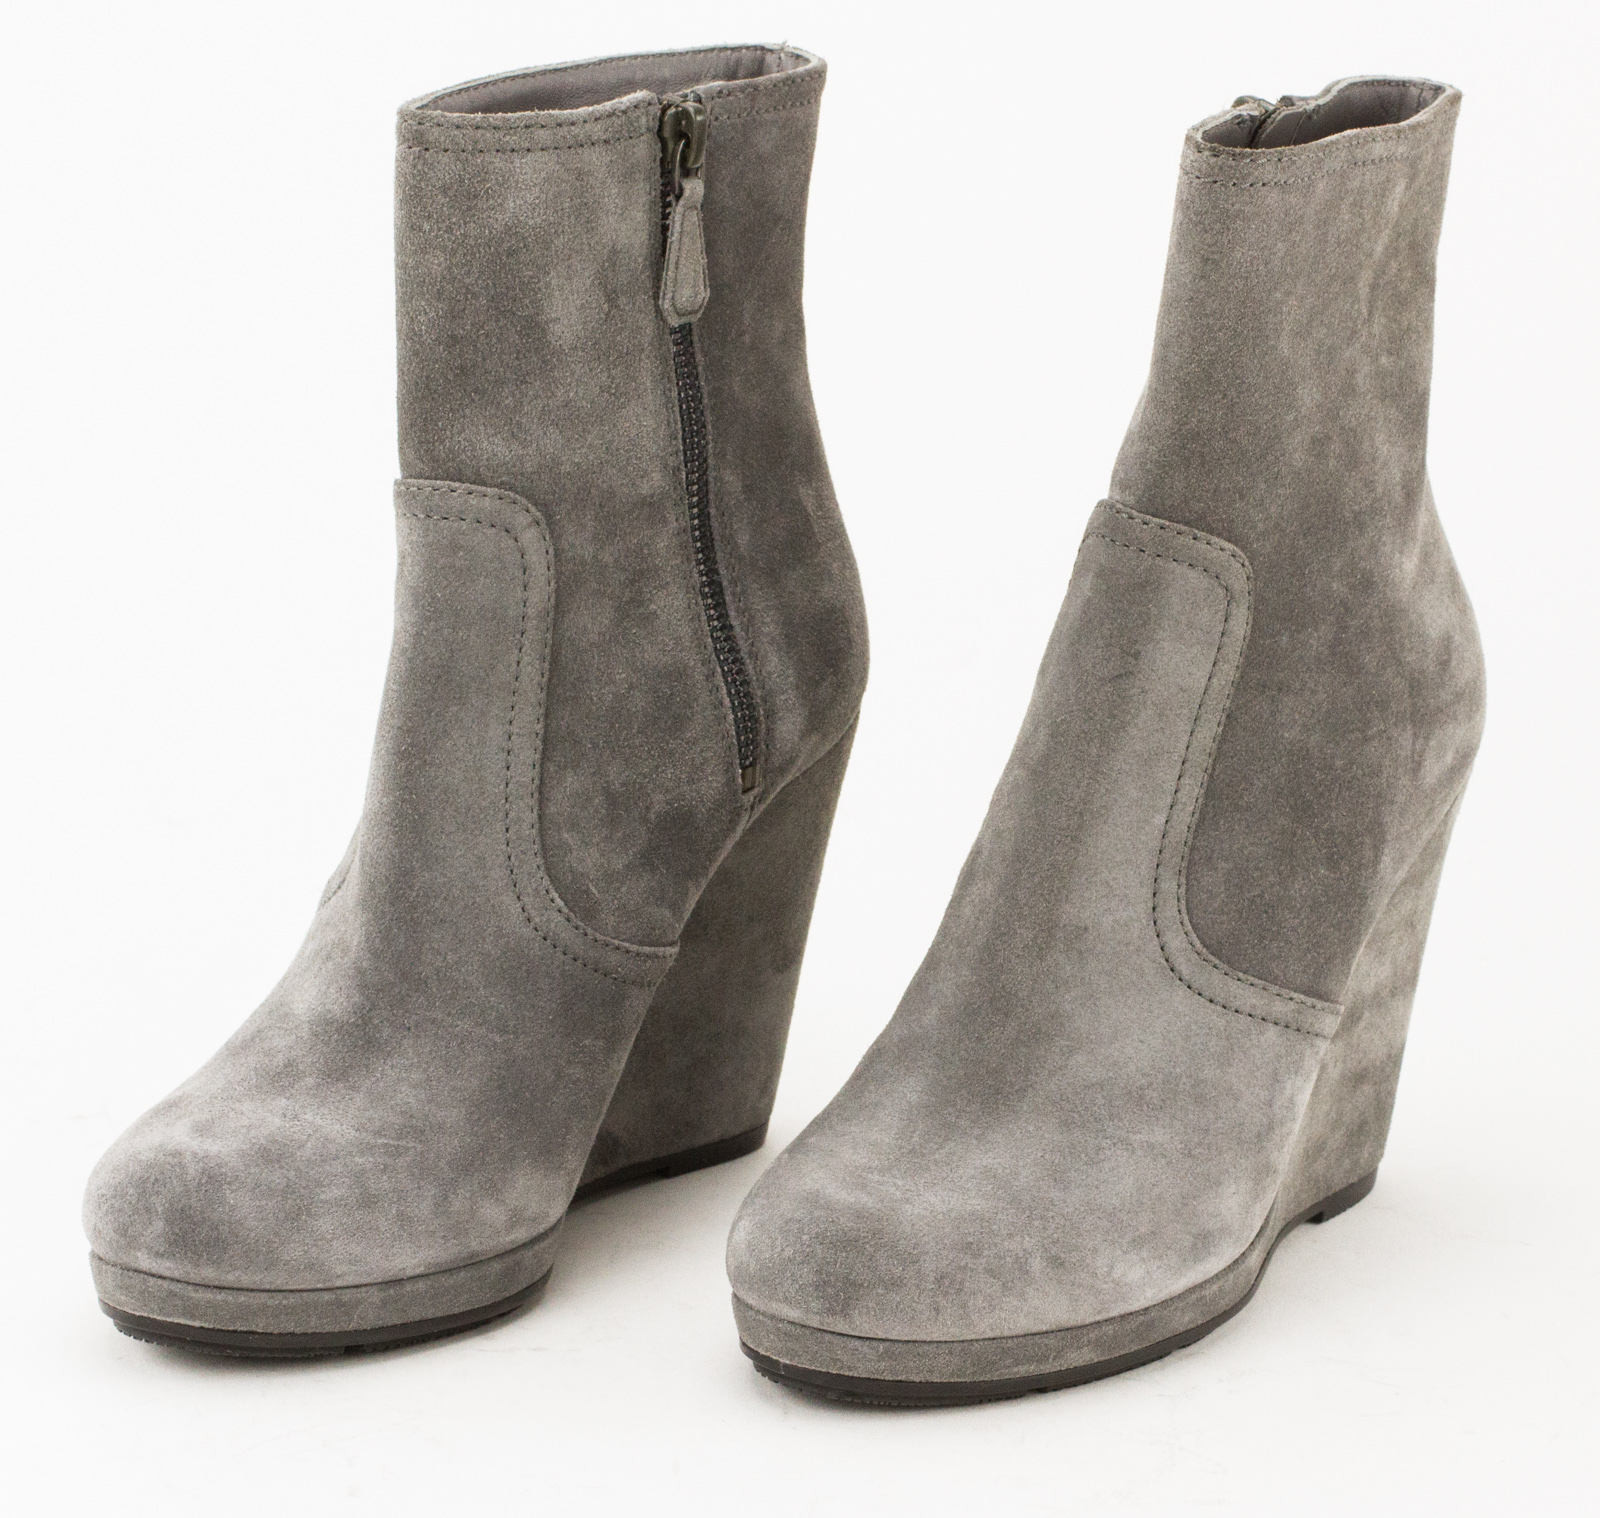 PRADA Gray Suede Wedge Ankle Booties   Penny Pincher Boutique 4139d11f5f2